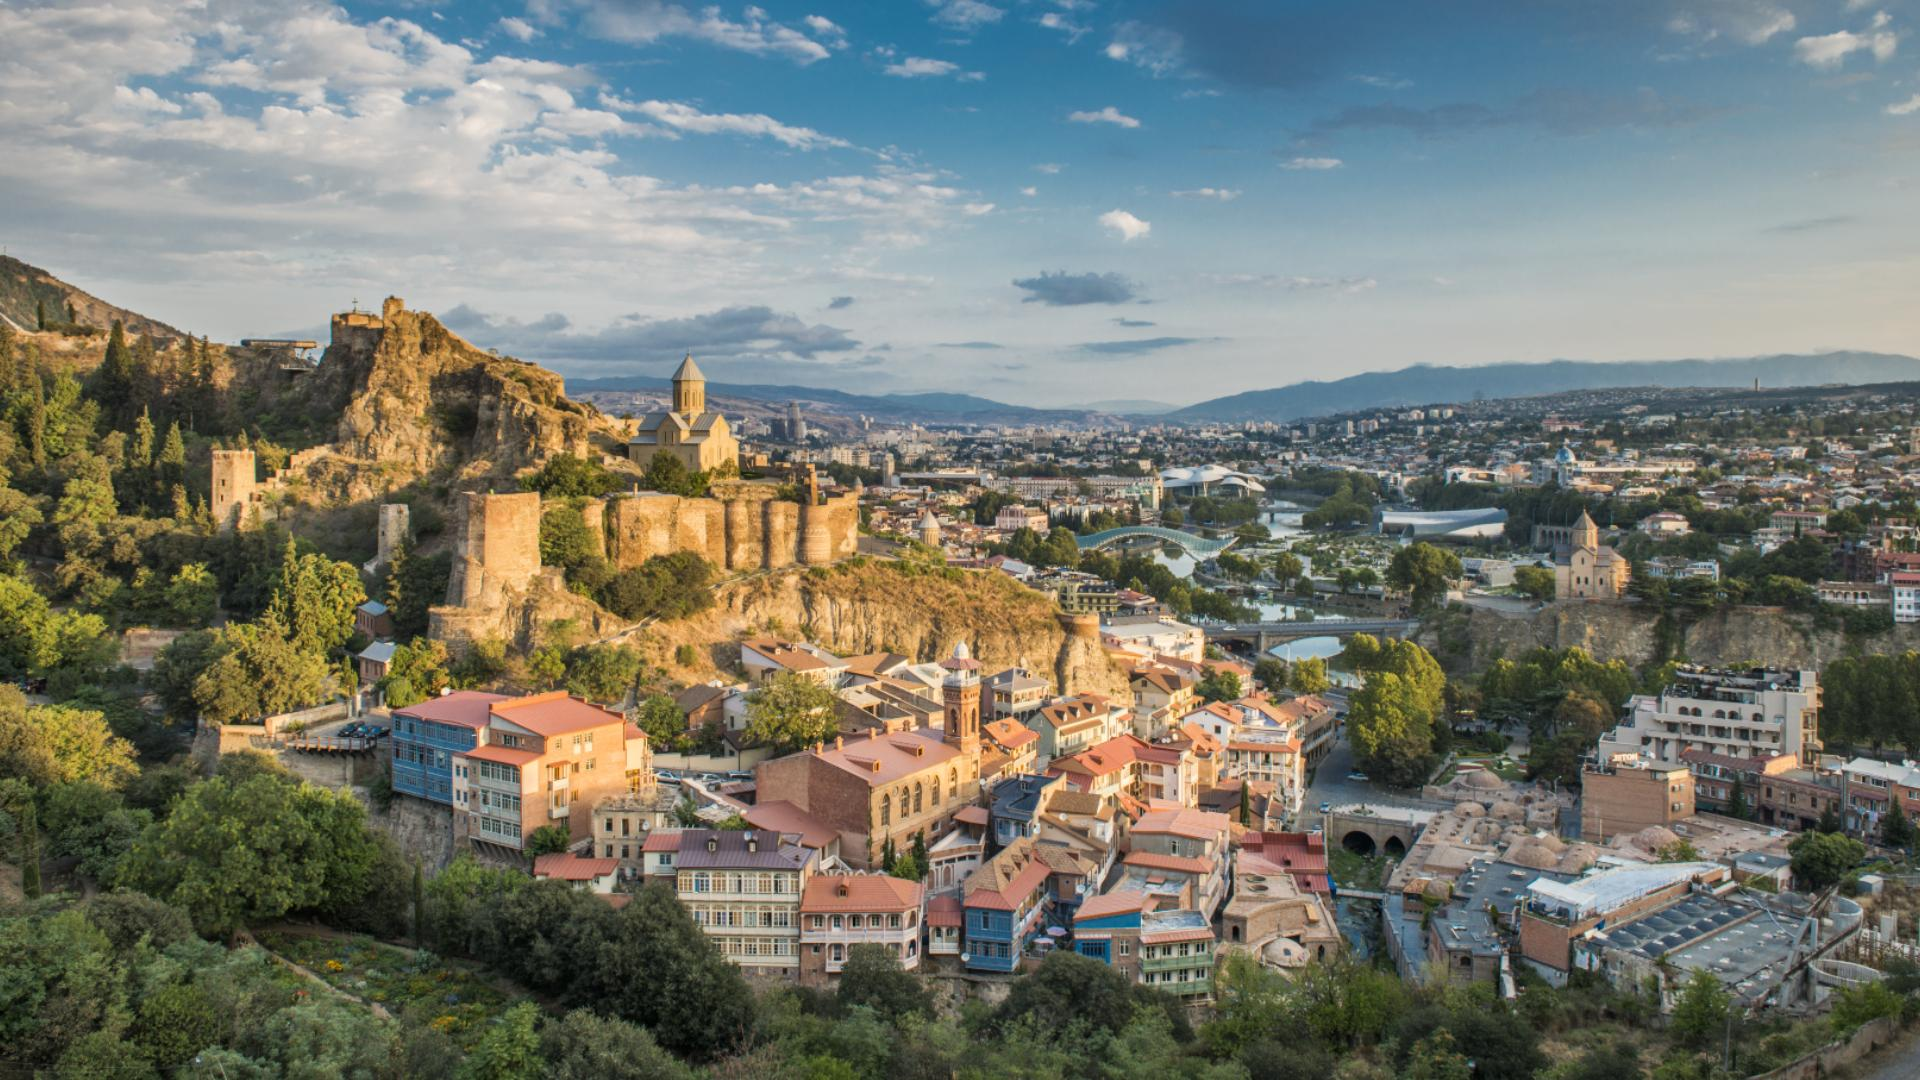 48 hours in Tbilisi: a tour of old and new - Lonely Planet